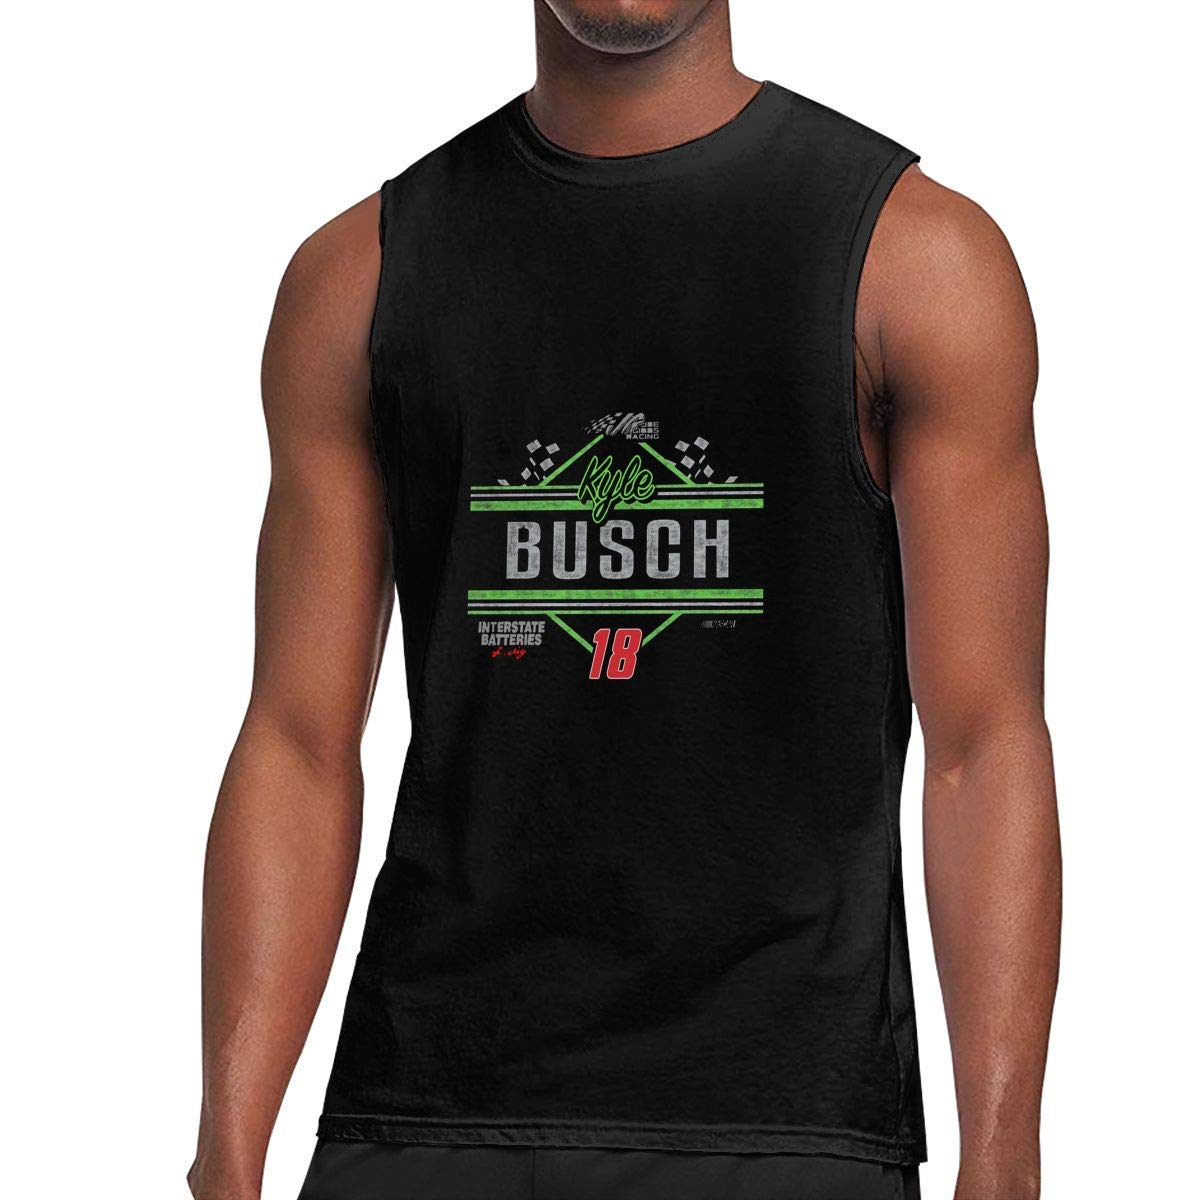 Cfdef S Sleeveless T Shirts Kyle Busch Throw Workout Tank Tops Gym Bodybuilding Tshirts Black